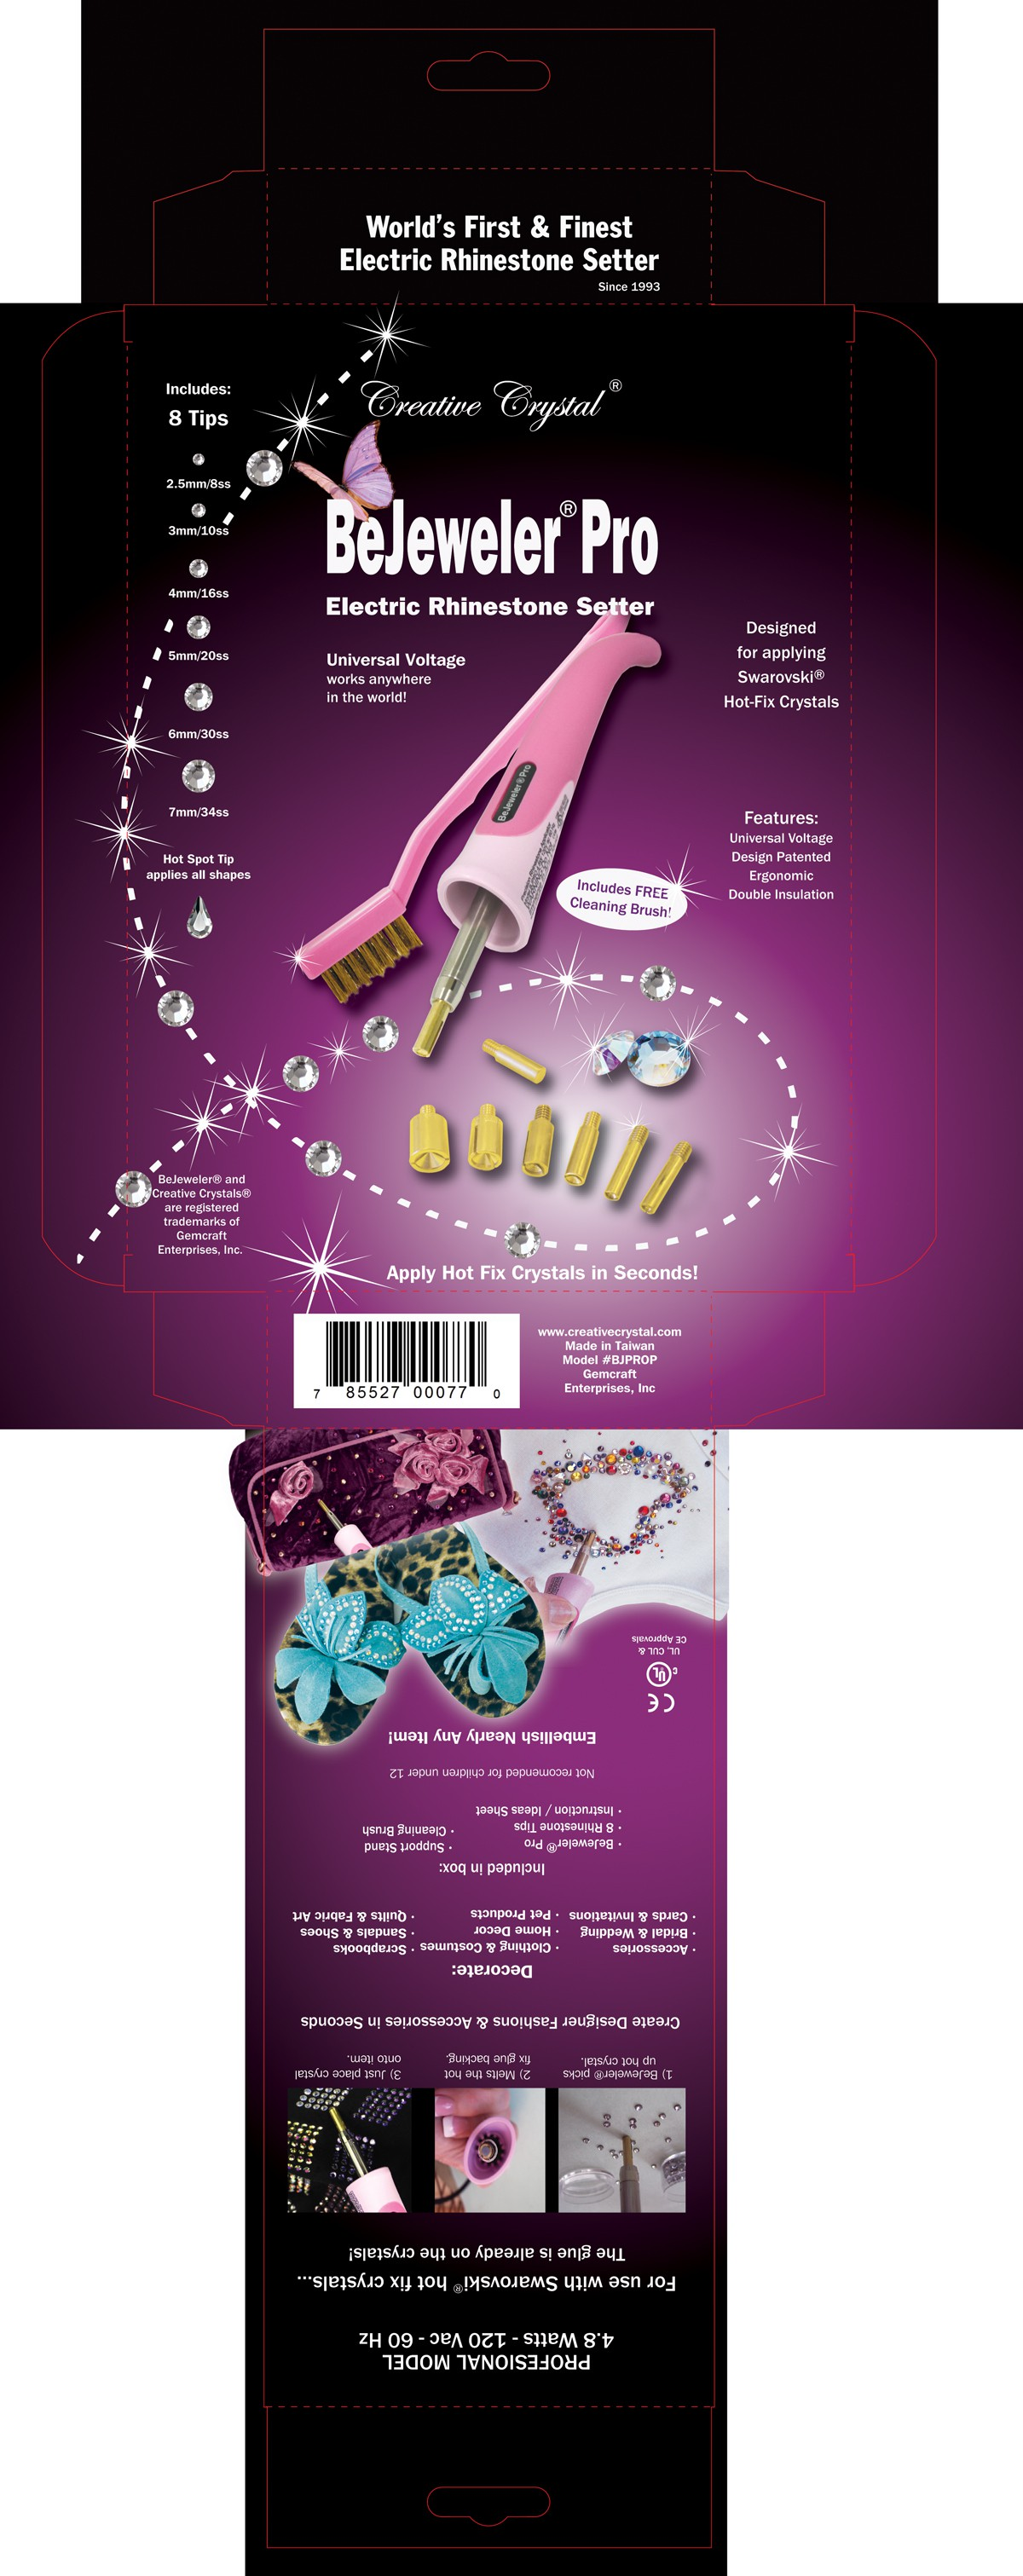 Help Gemcraft Enterprises, Inc (Creative Crystal) with a new packaging or label design